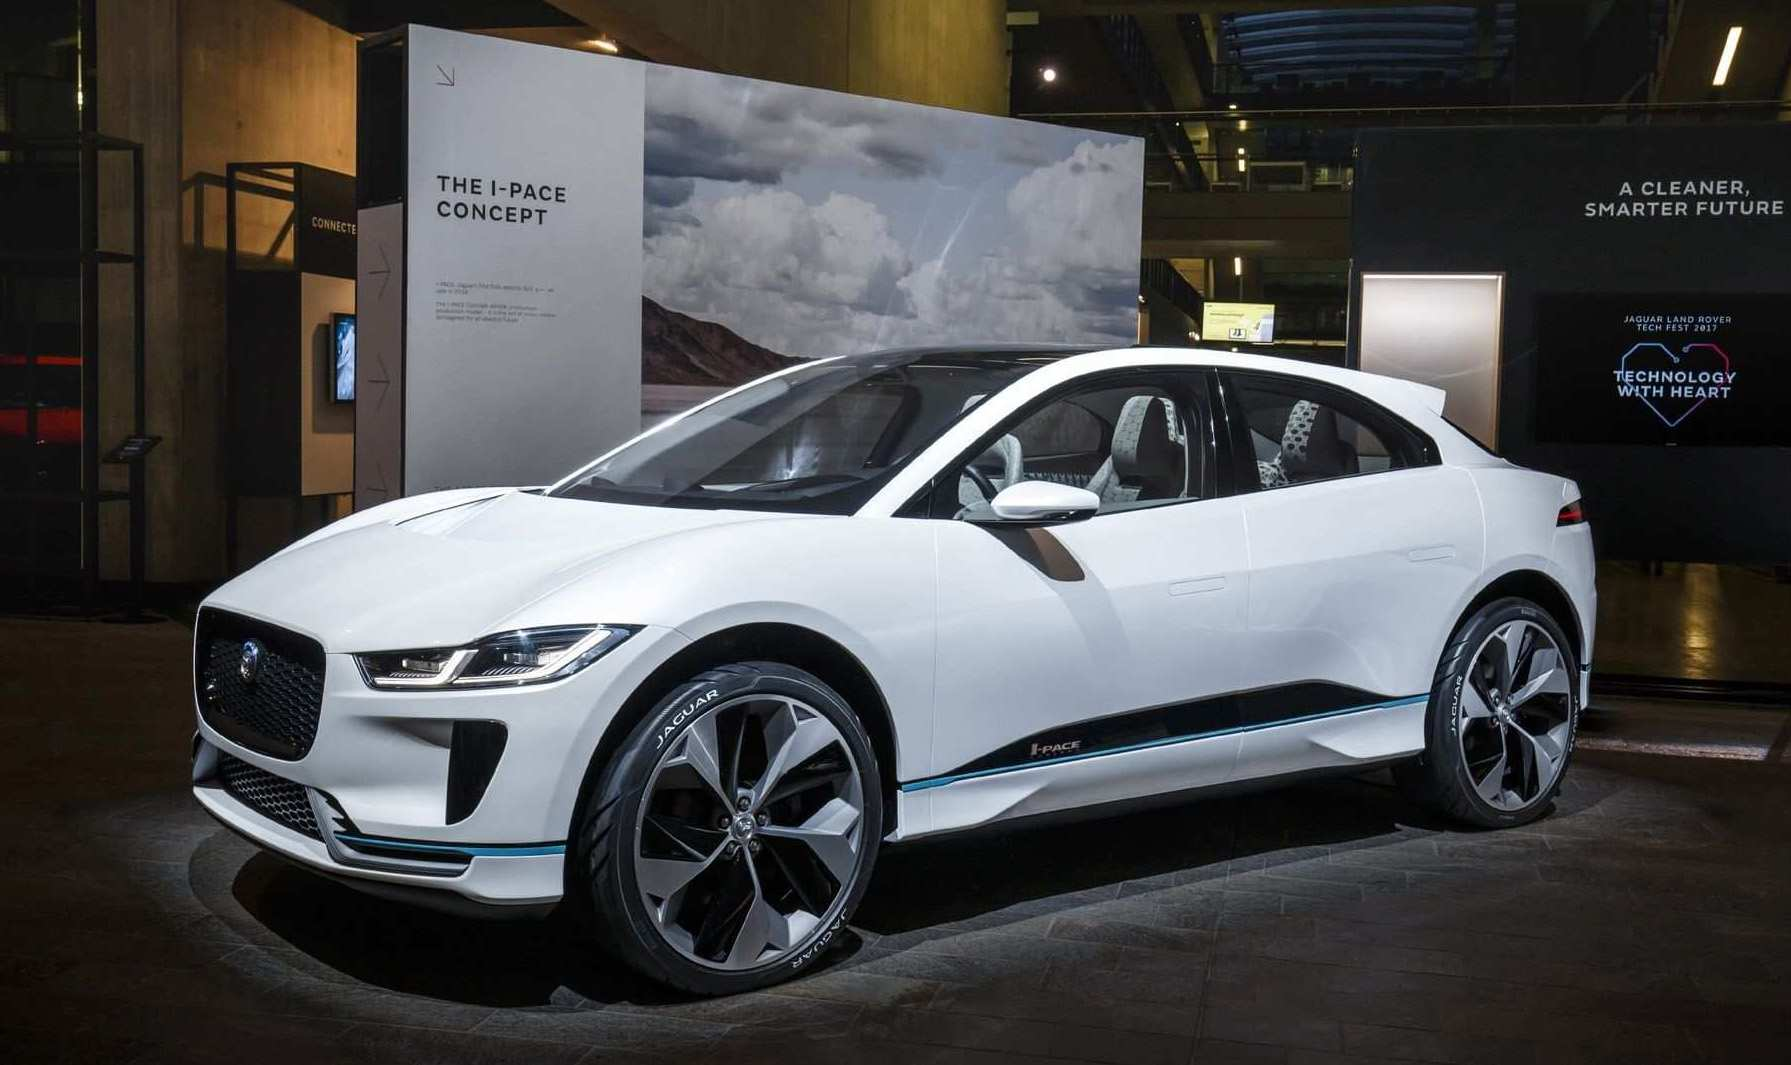 50 New Jaguar I Pace 2020 Model 2 Price Design And Review